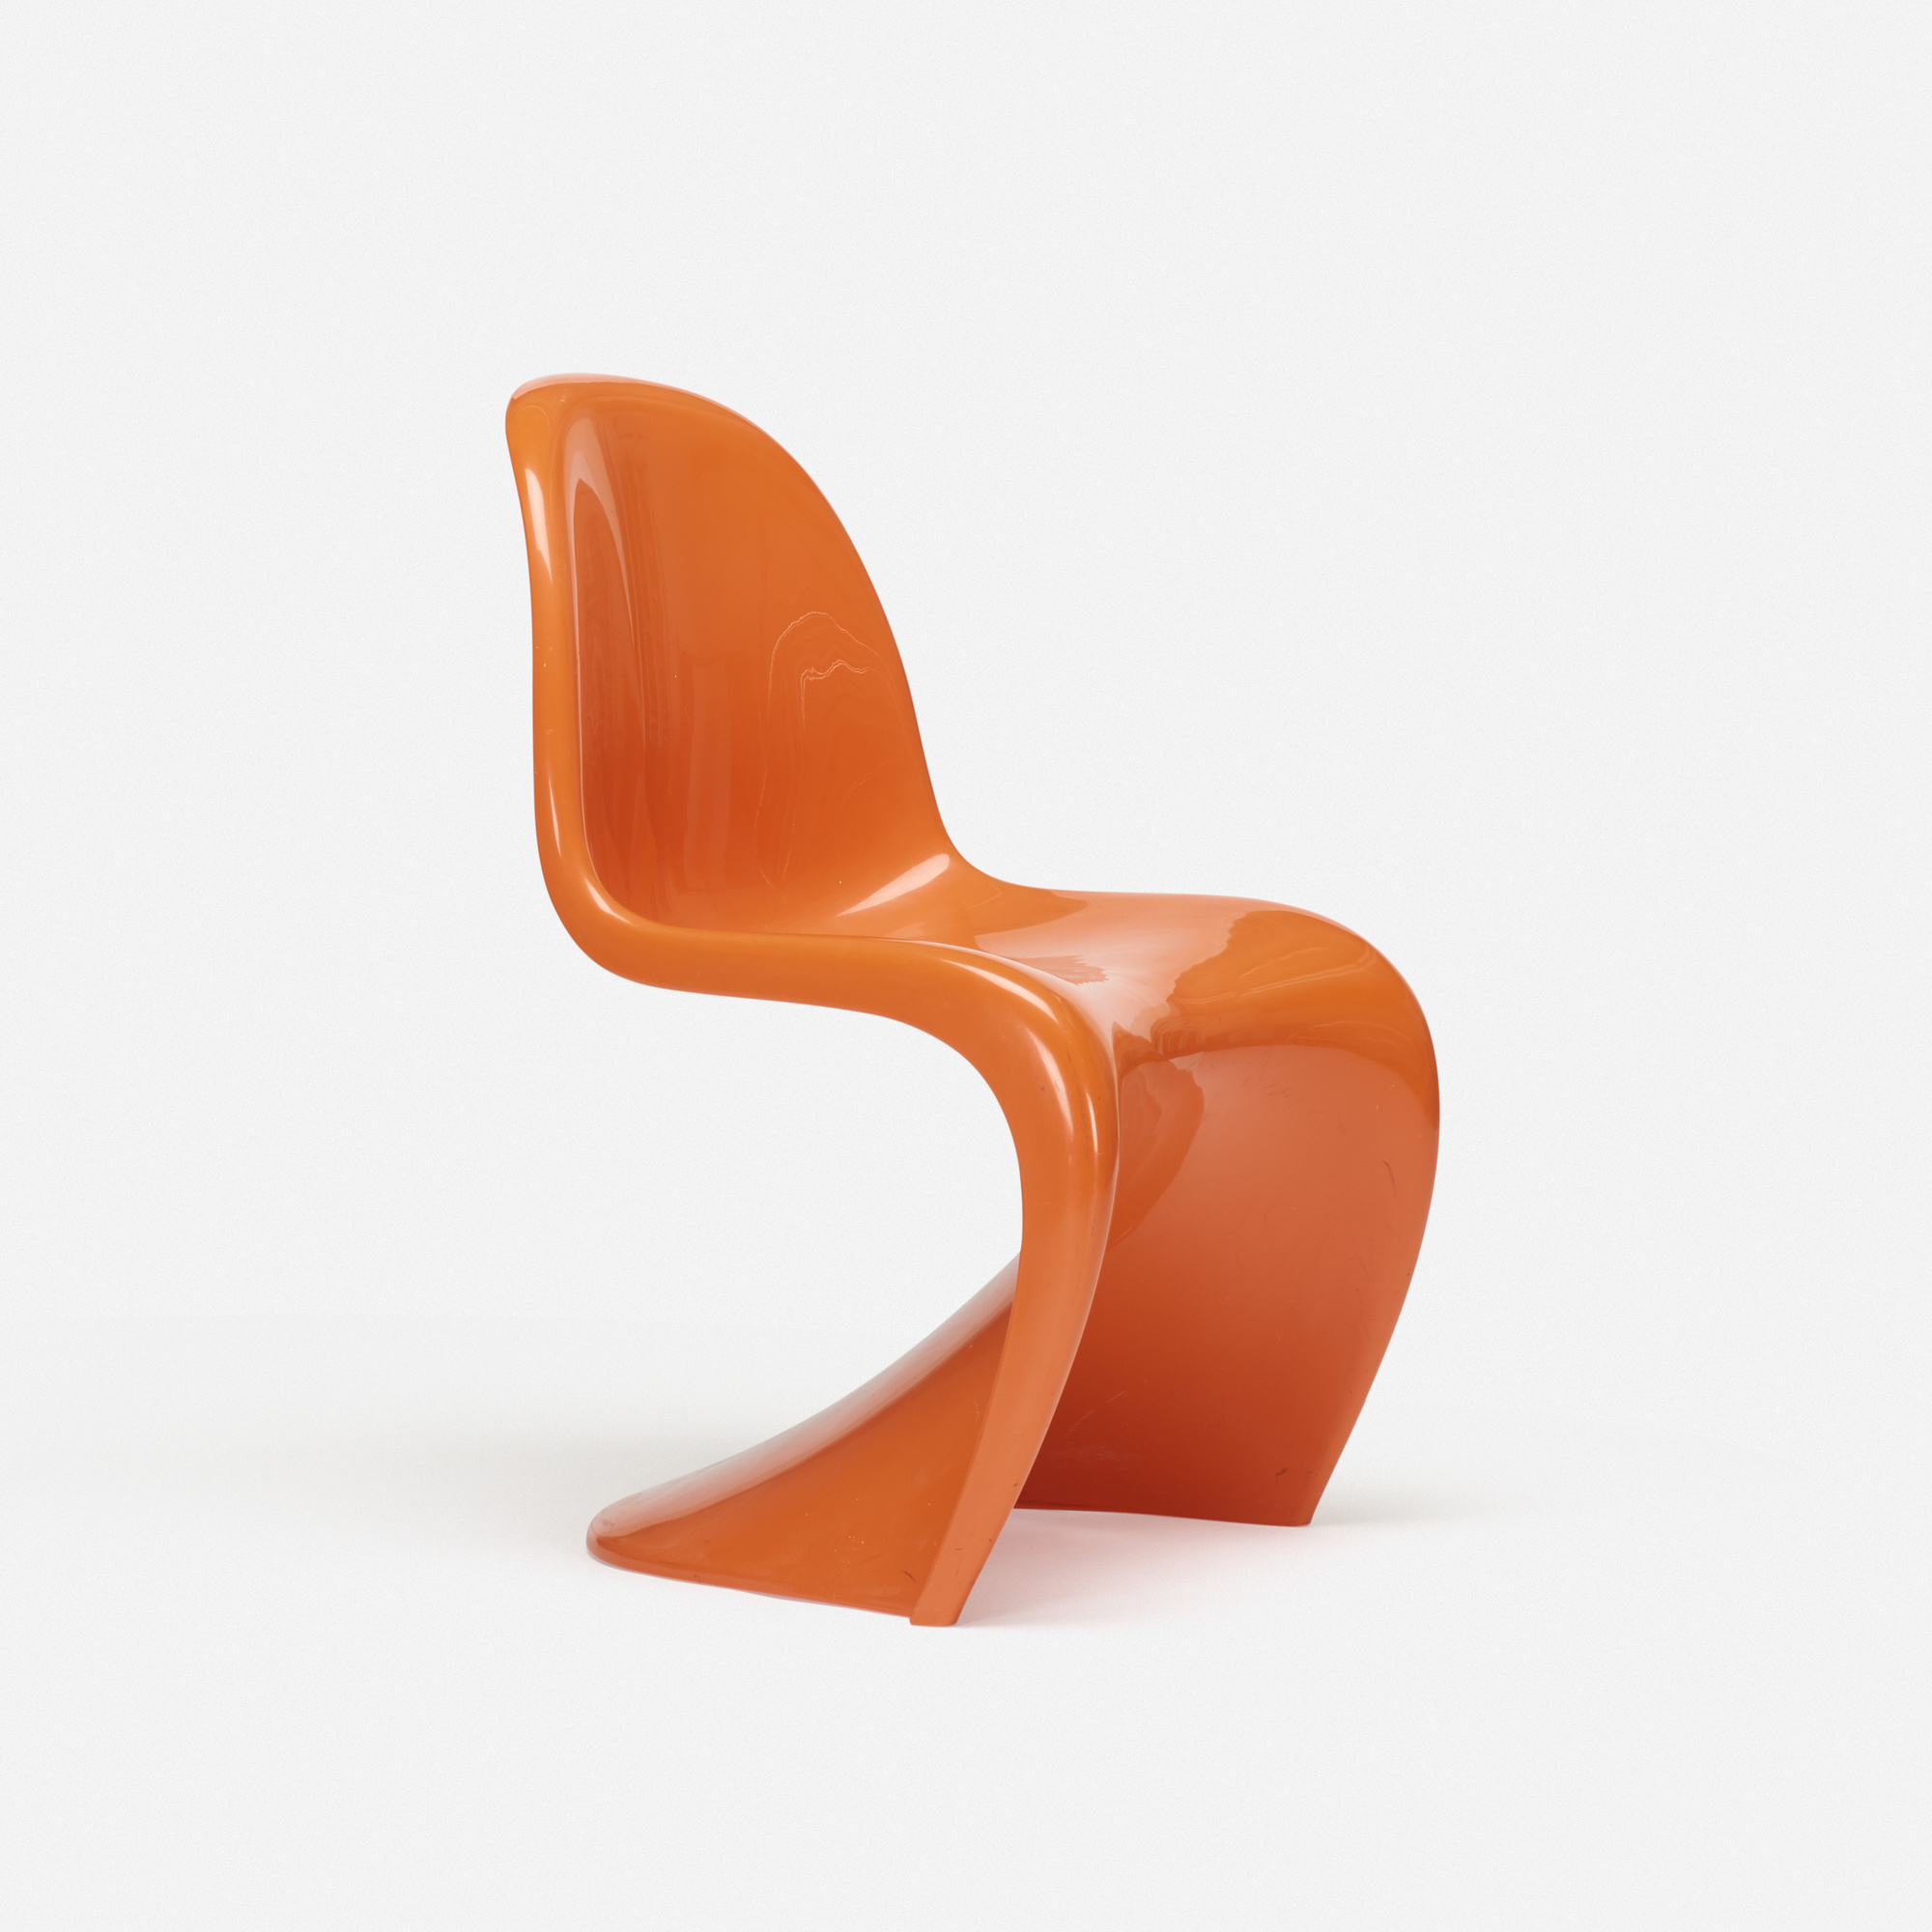 502: Verner Panton / Panton Chair (1 Of 3)